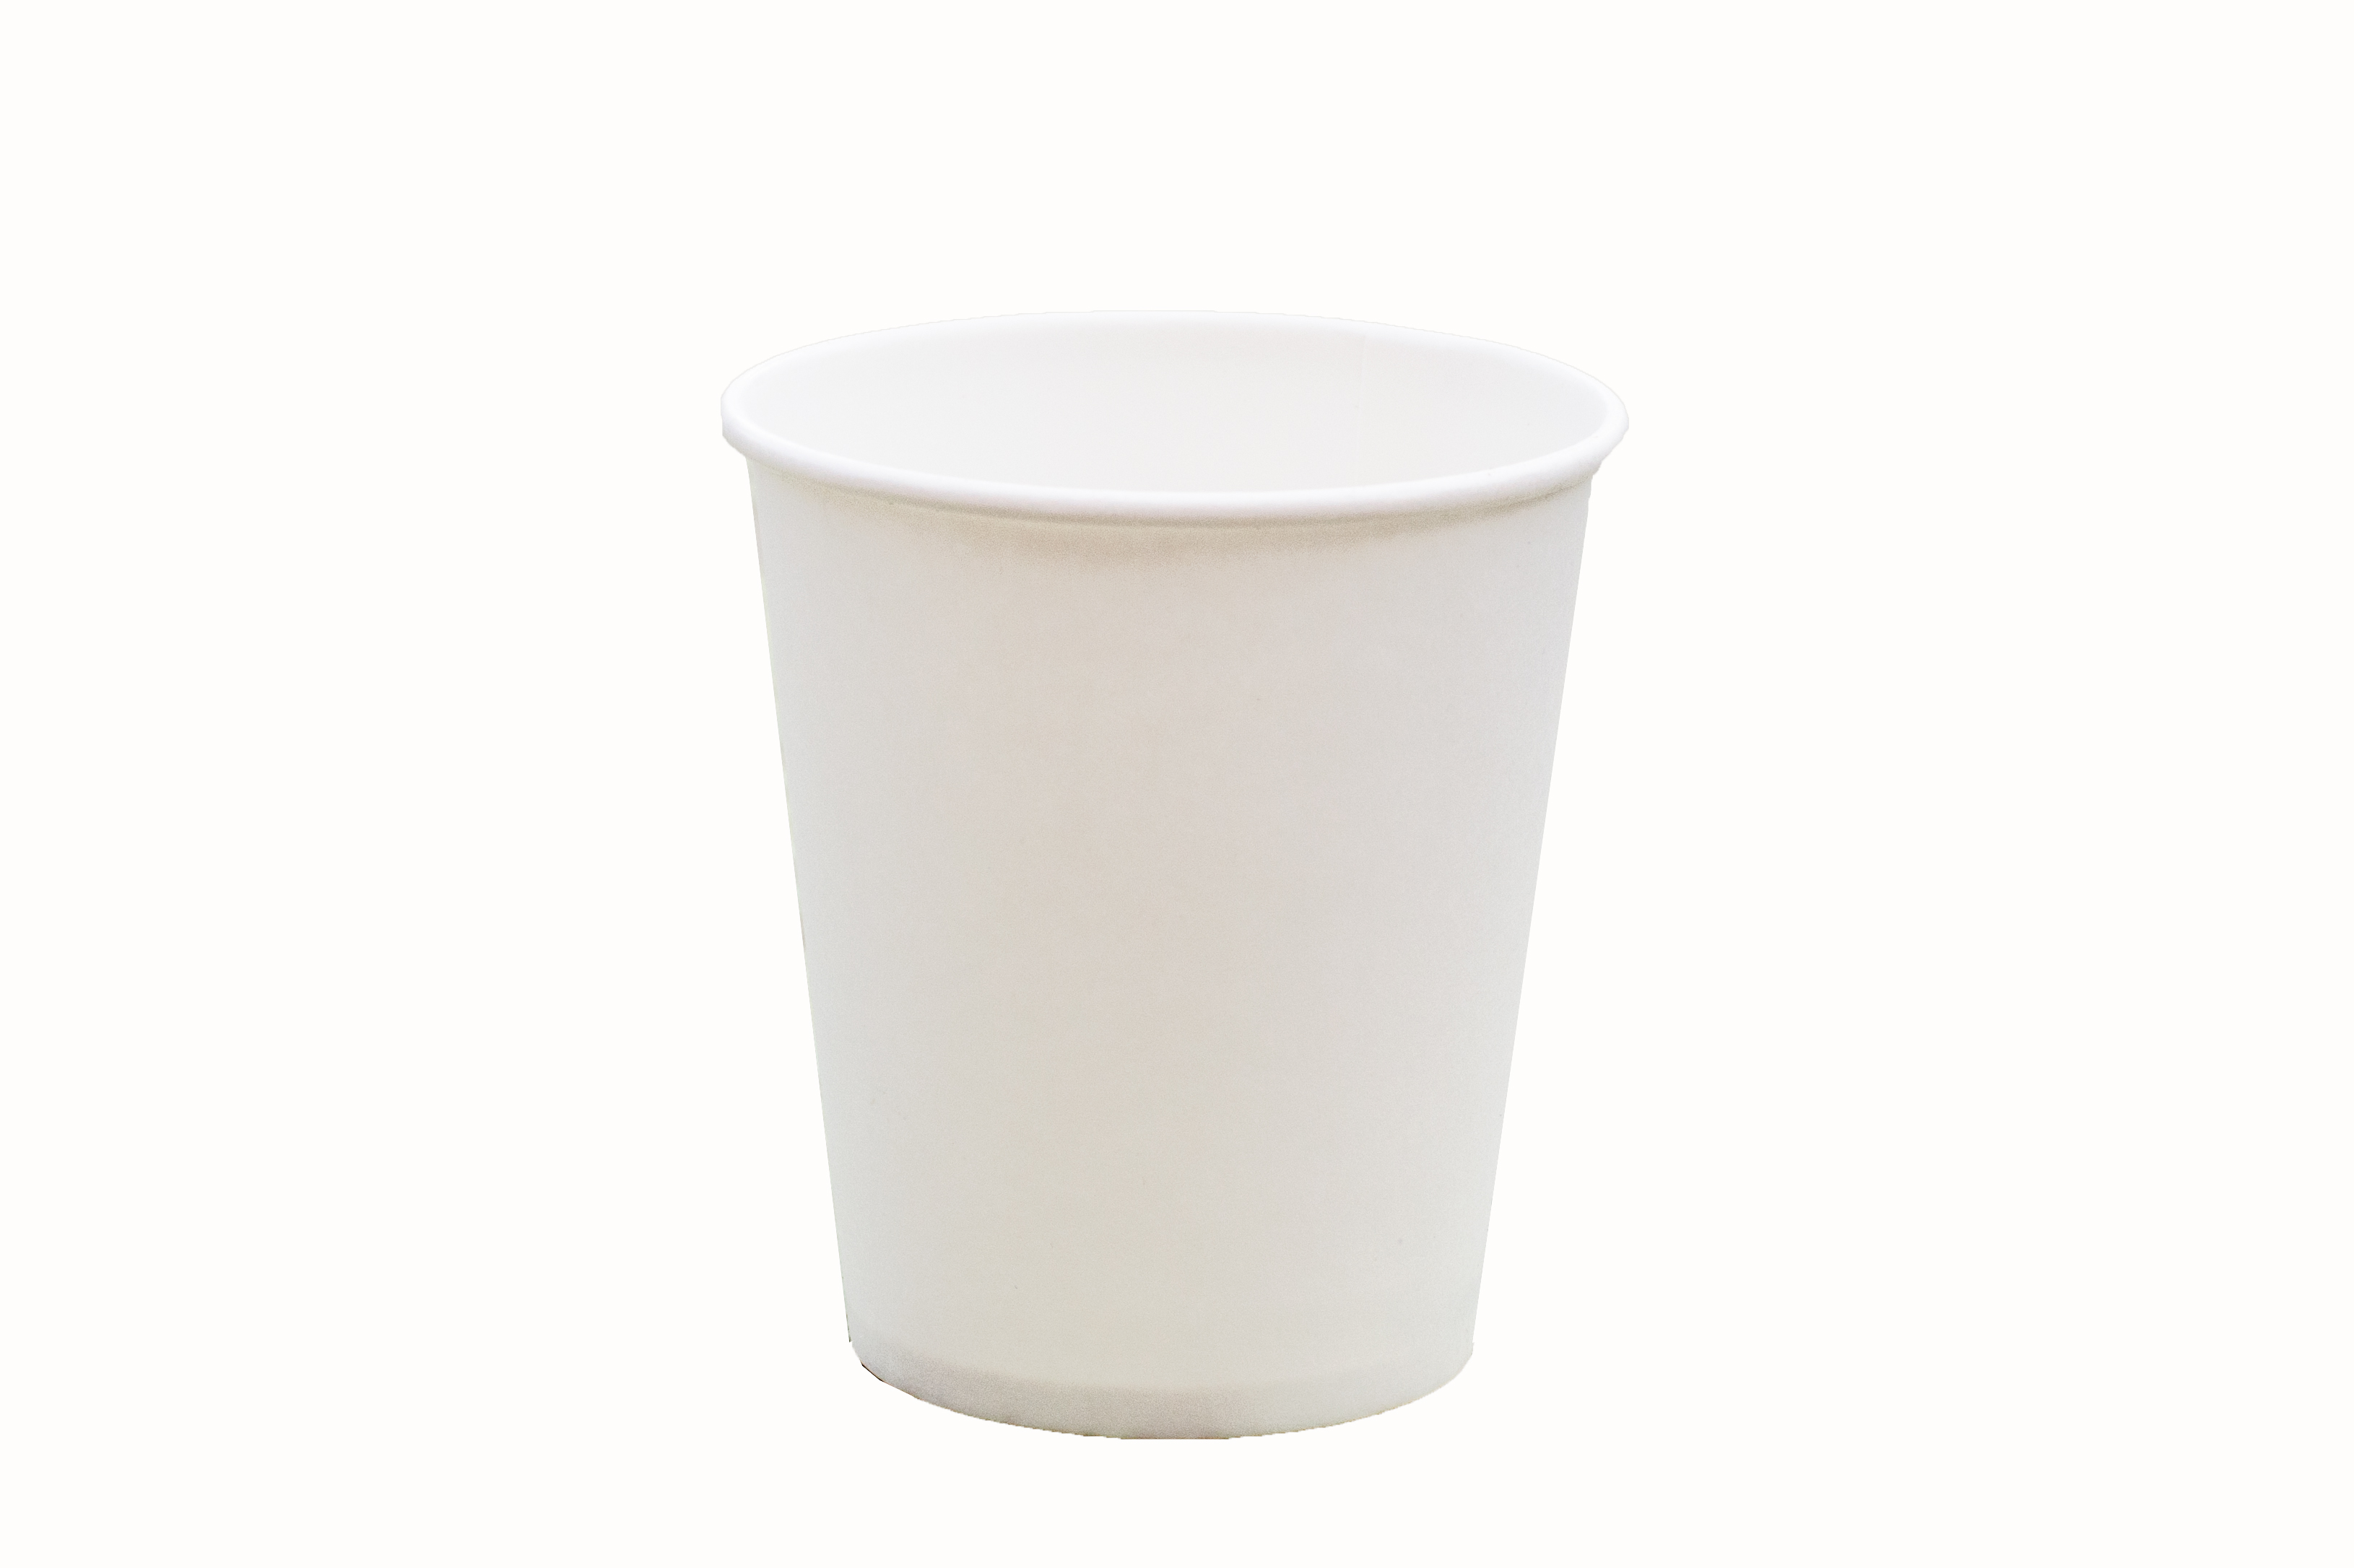 Paper cup - Wikipedia